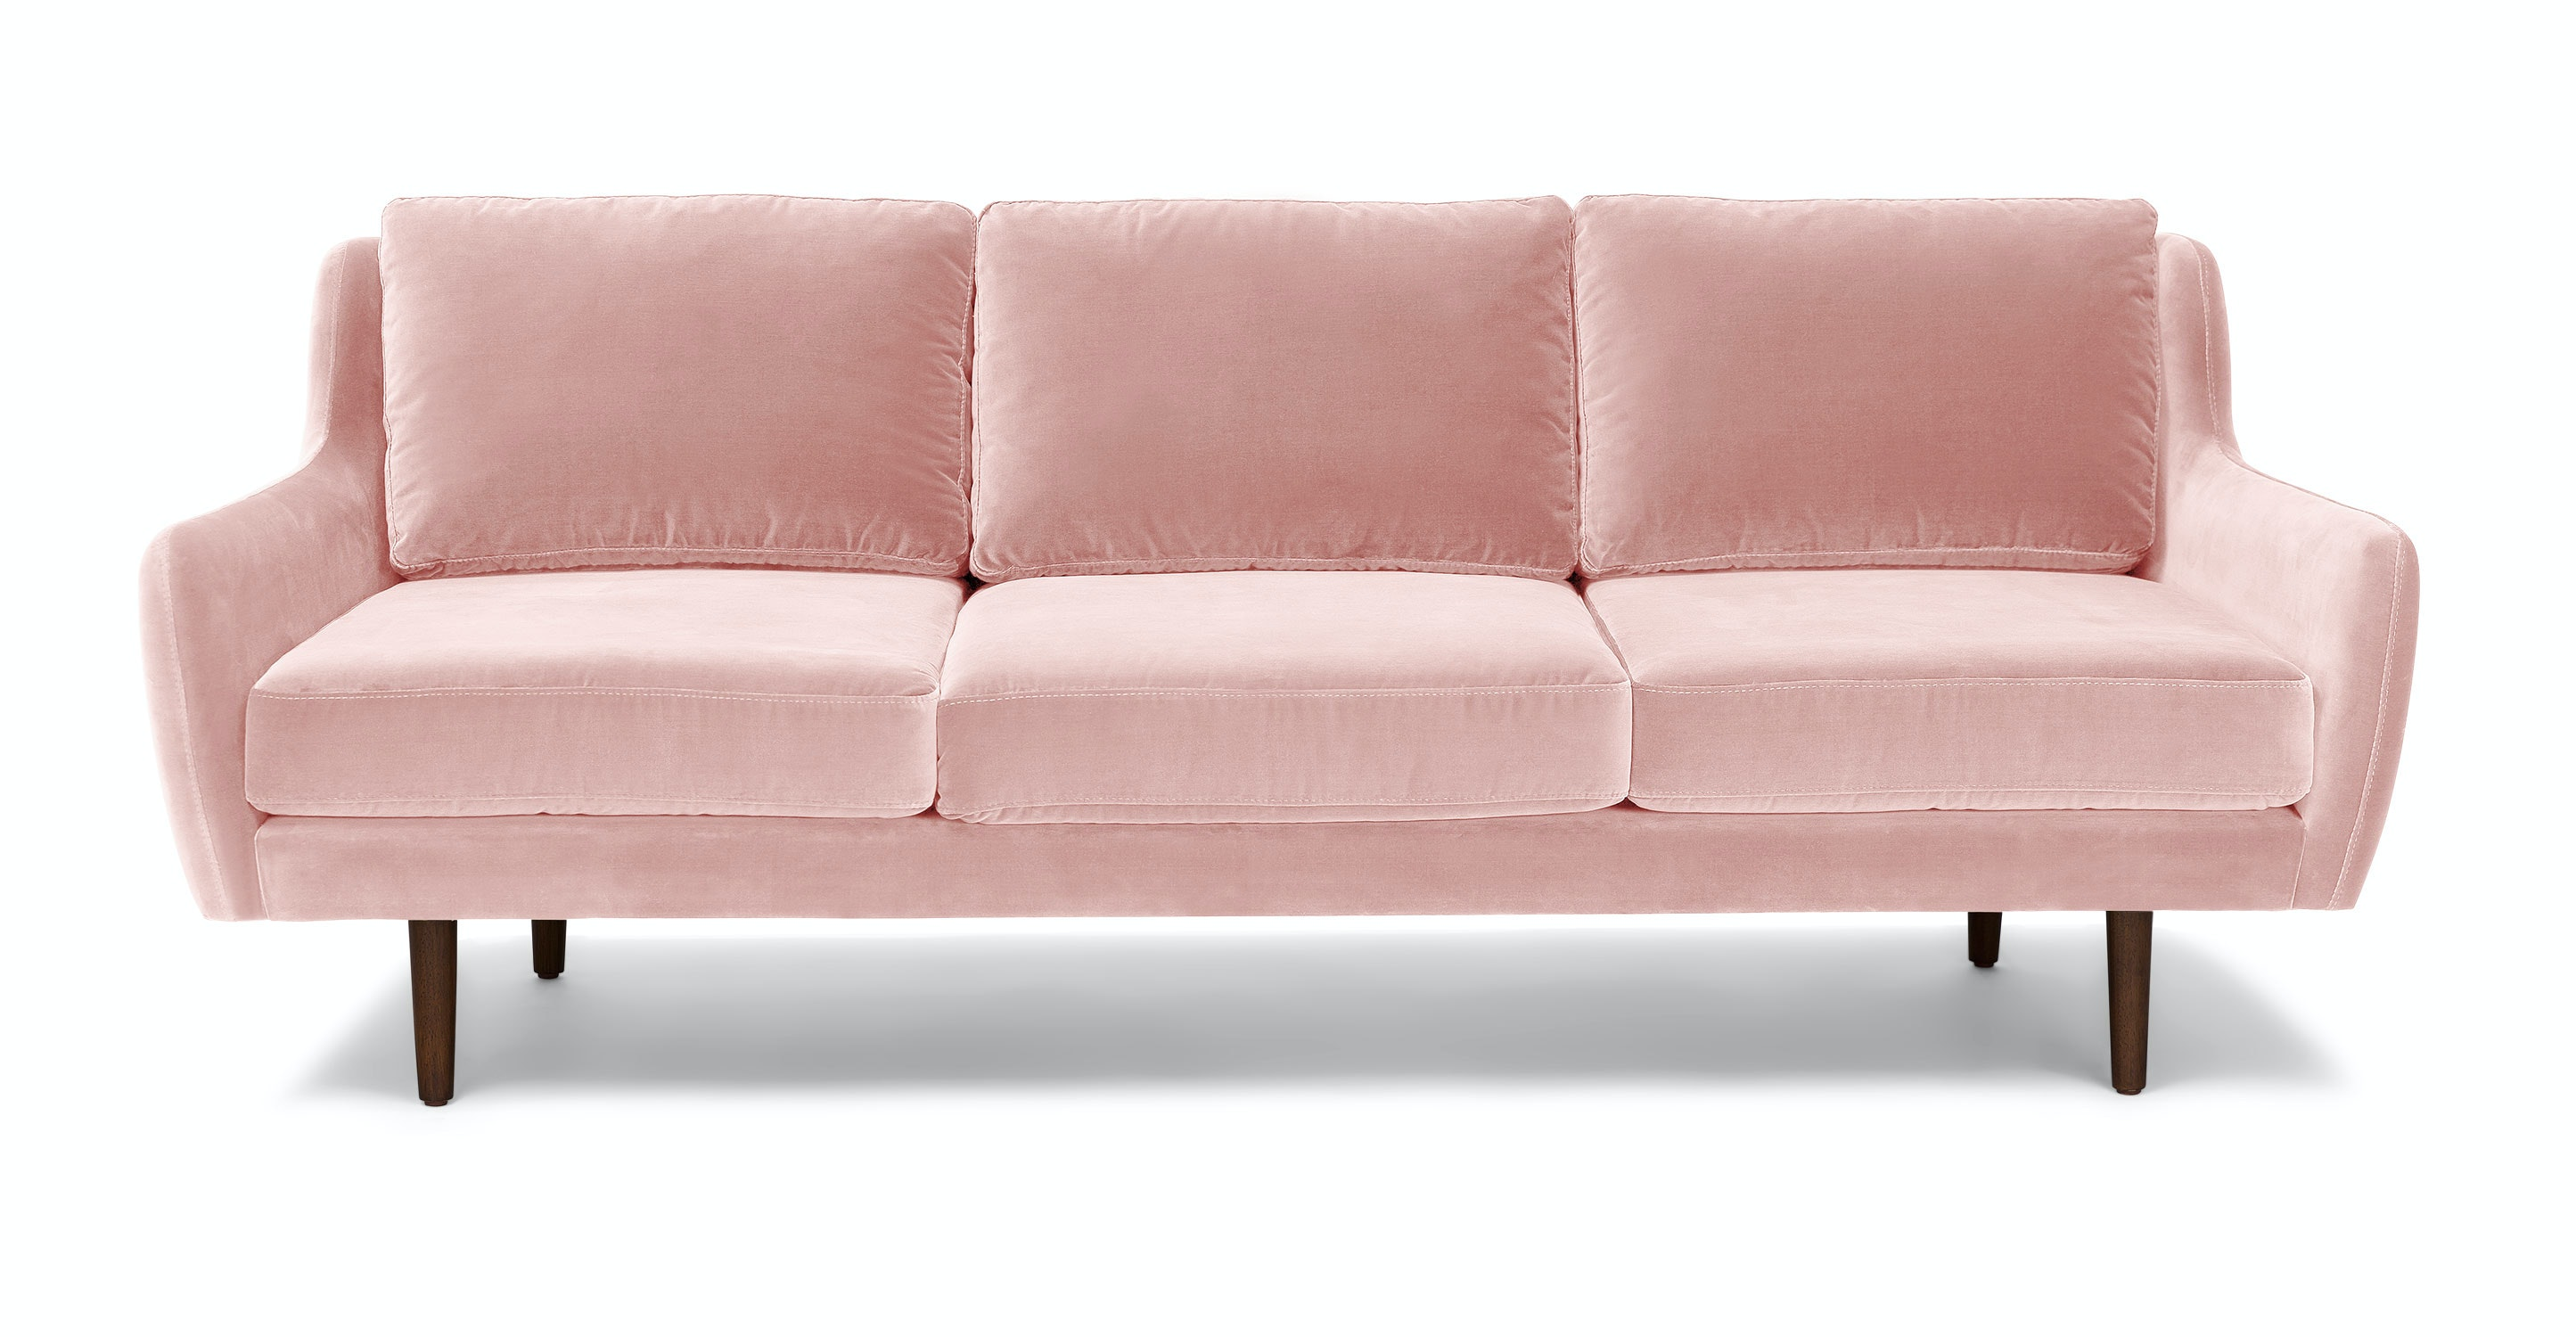 office lounge chairs with Matrix Blush Pink Sofa on Magis Eero Aarnio Puppy moreover The Diplomat Sleeper Sofa 4 furthermore Turn Tall Side Table besides Bensen Niels Bendtsen Sleeper Sofa additionally Matrix Blush Pink Sofa.